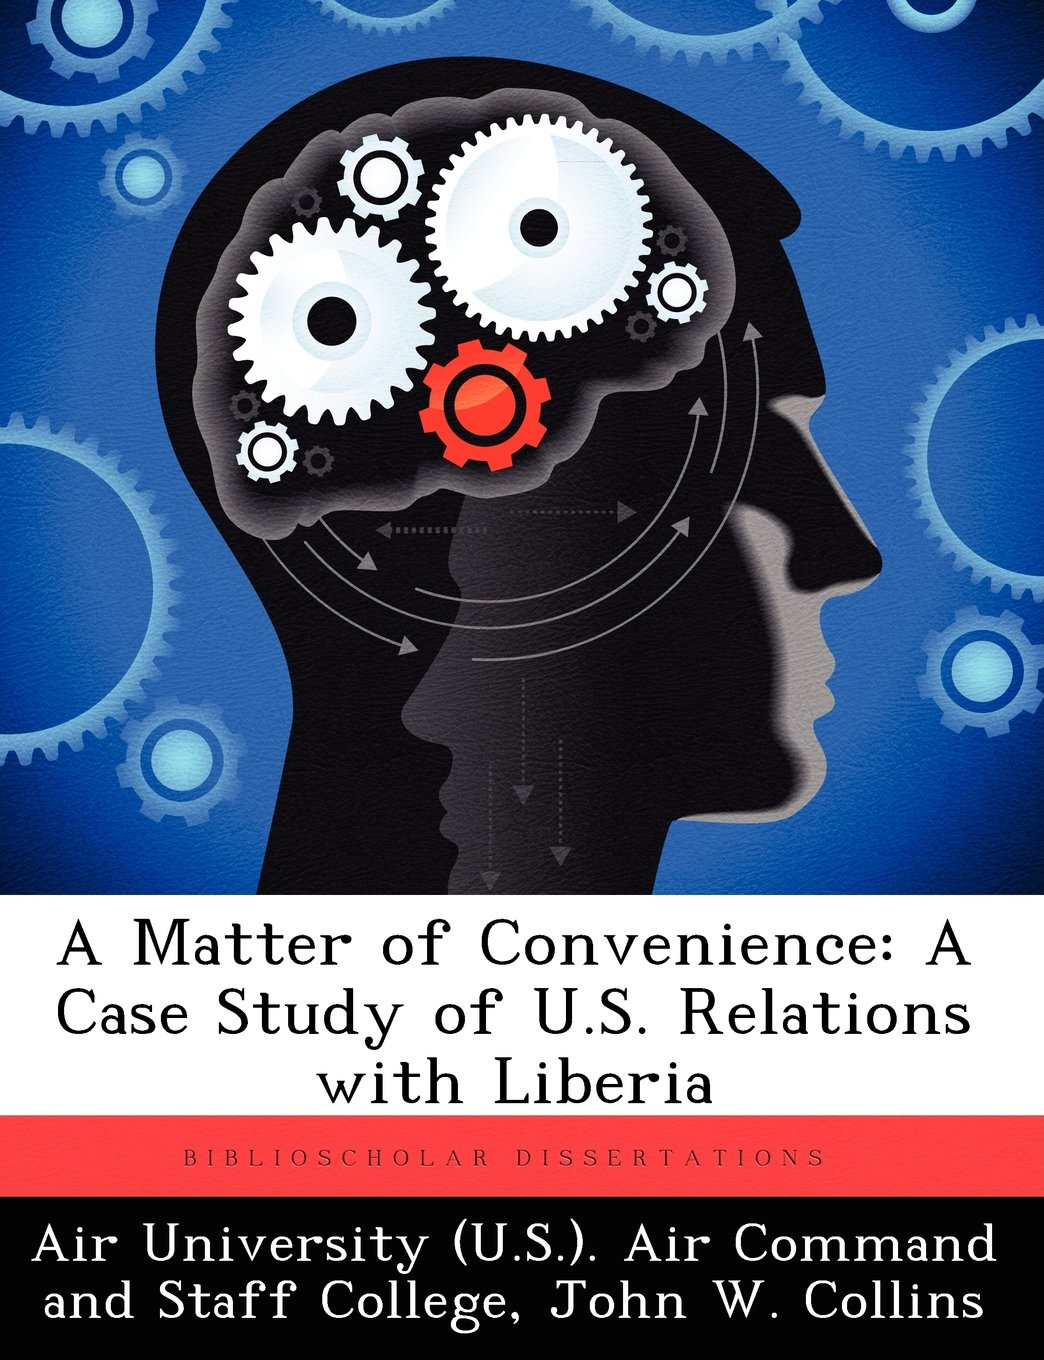 A Matter of Convenience: A Case Study of U.S. Relations with Liberia ebook